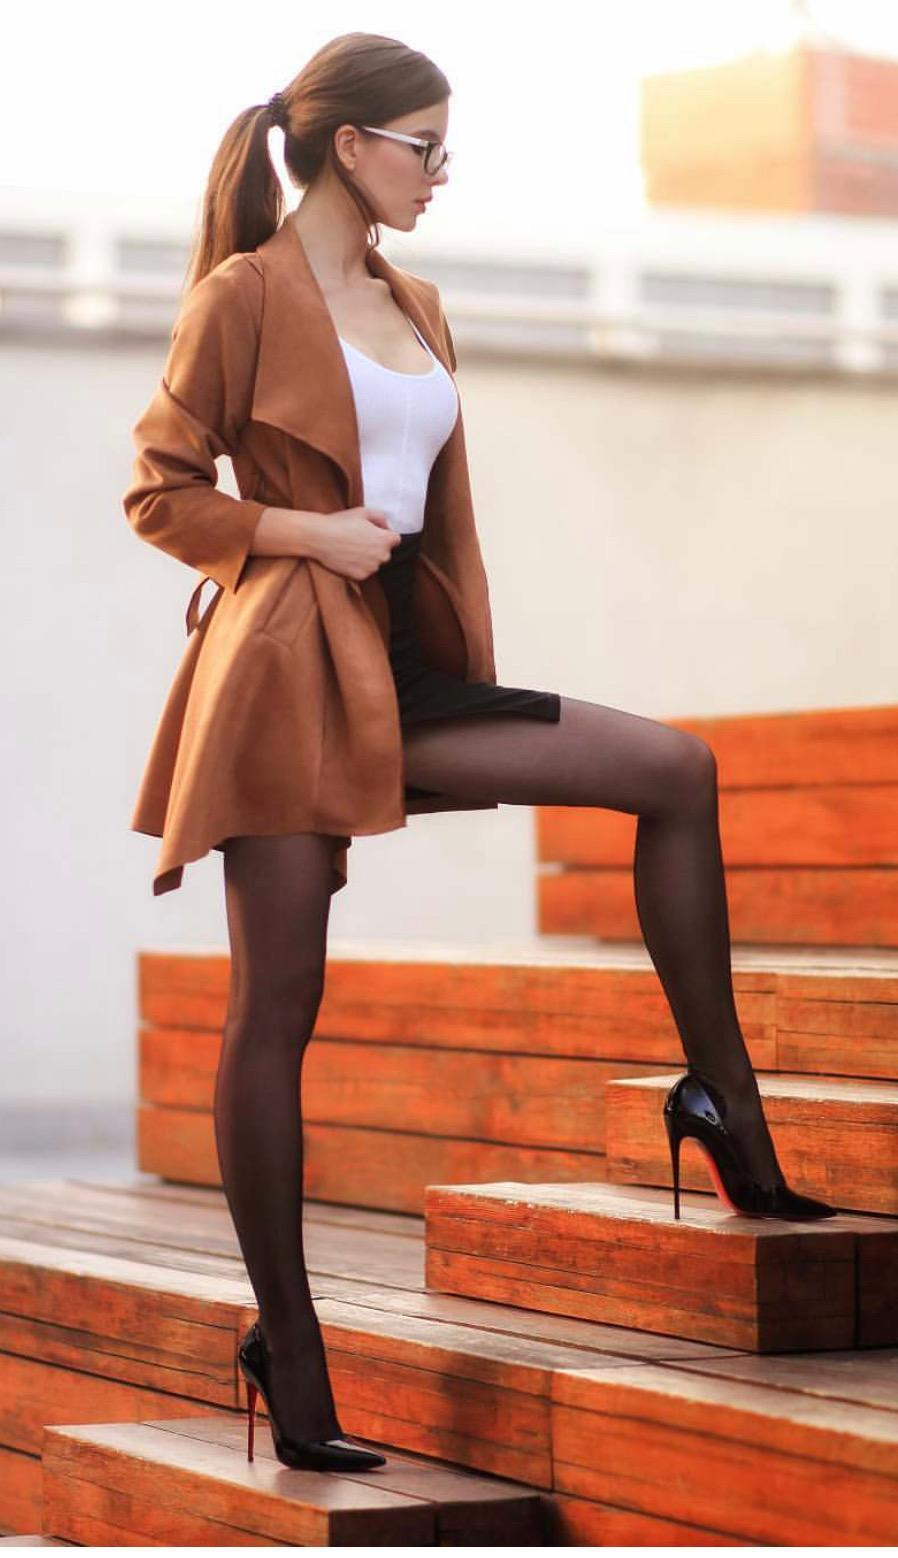 sugizo and the spank your juice #brunette #dress #heels #library #nn #prettyface #sexy #skinny #summer #teen #teenmistress